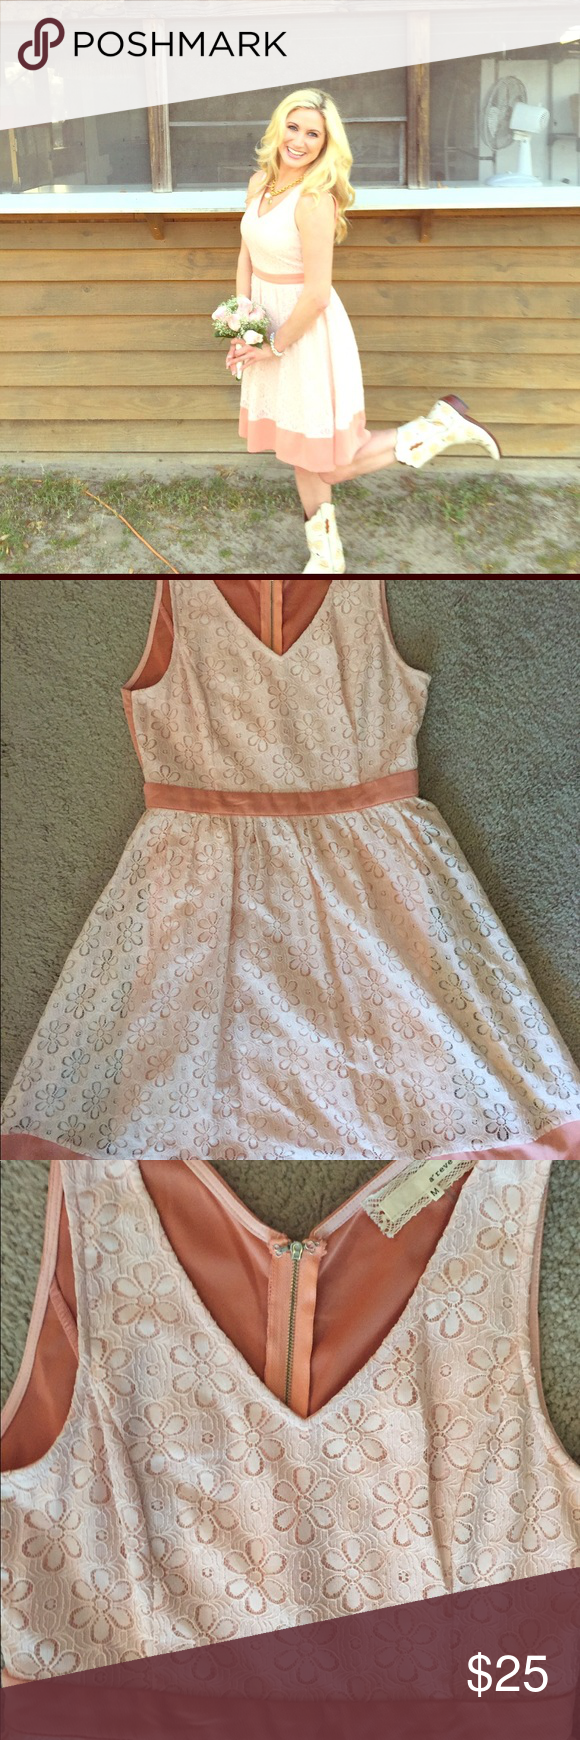 Light pink dress this eyelet light pink dress is perfect for a